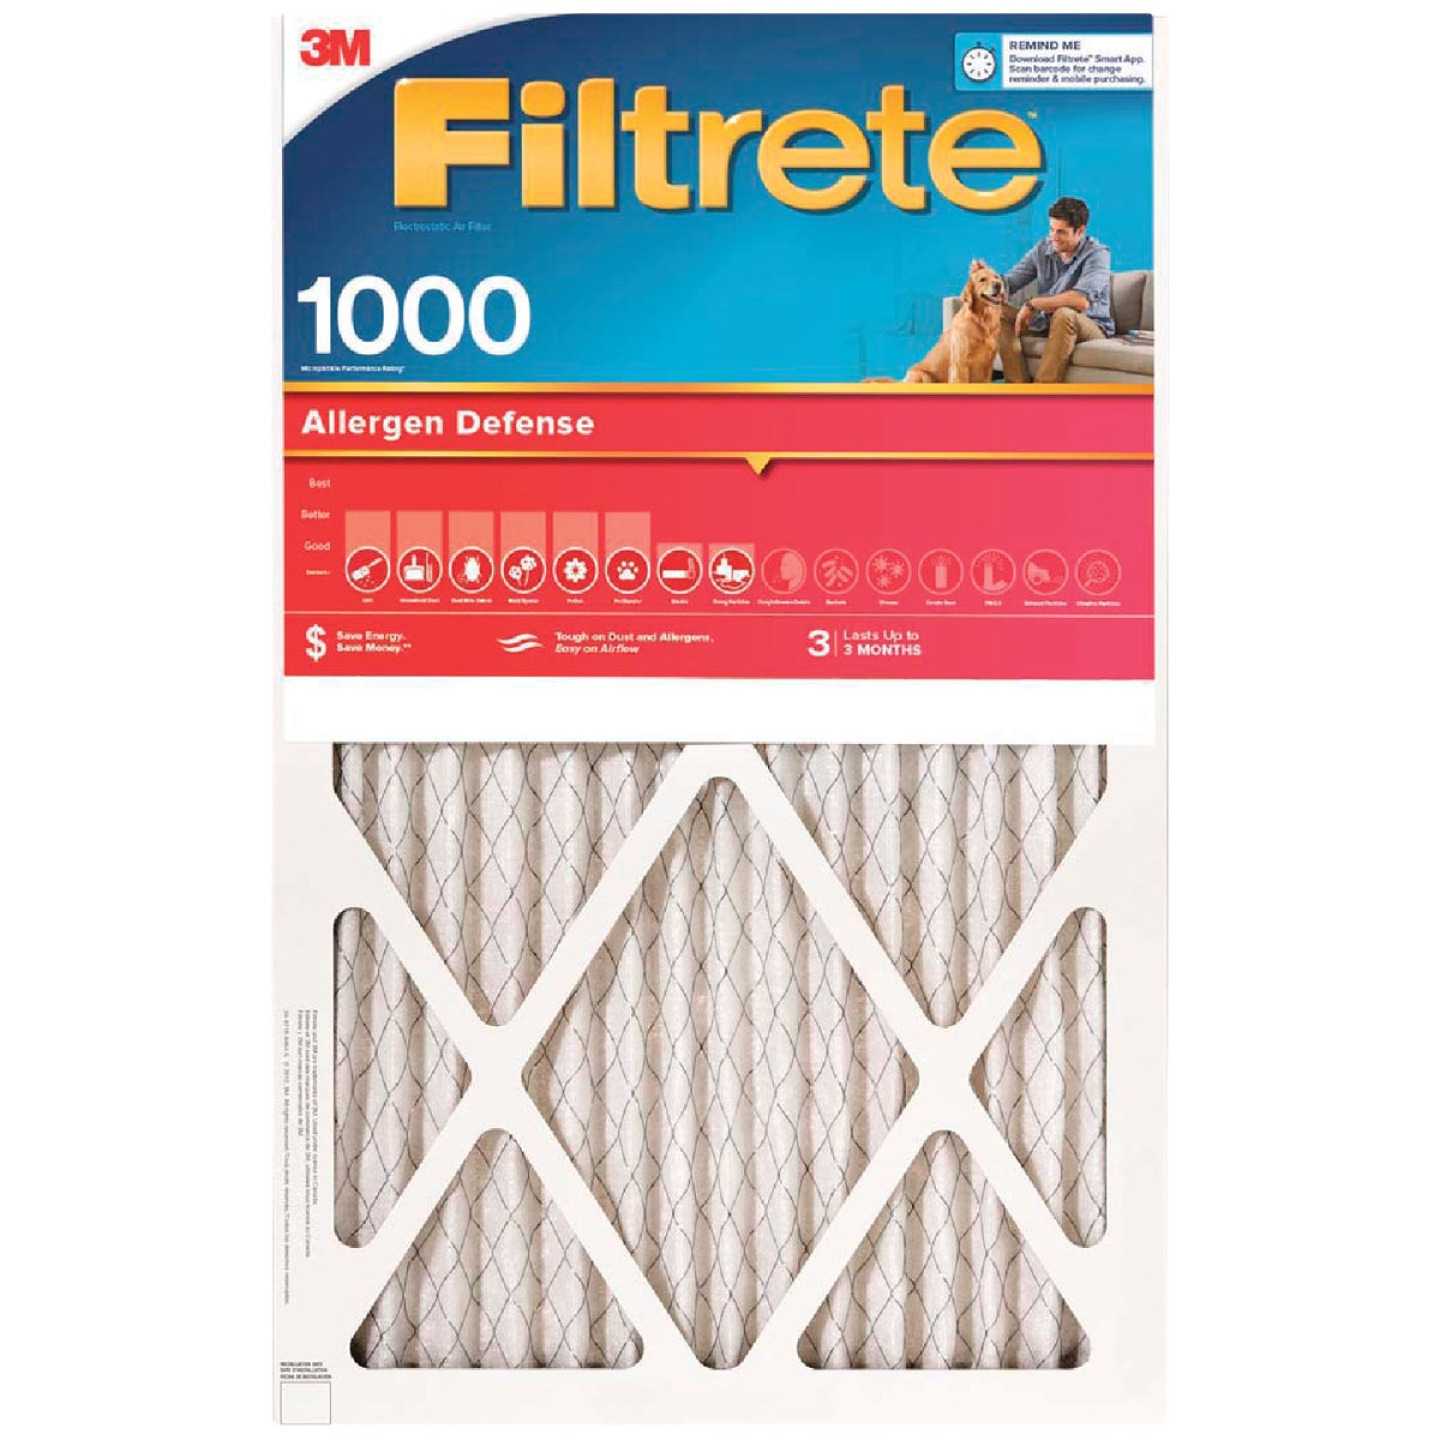 3M Filtrete 14 In. x 24 In. x 1 In. Allergen Defense 1000/1085 MPR Furnace Filter Image 1